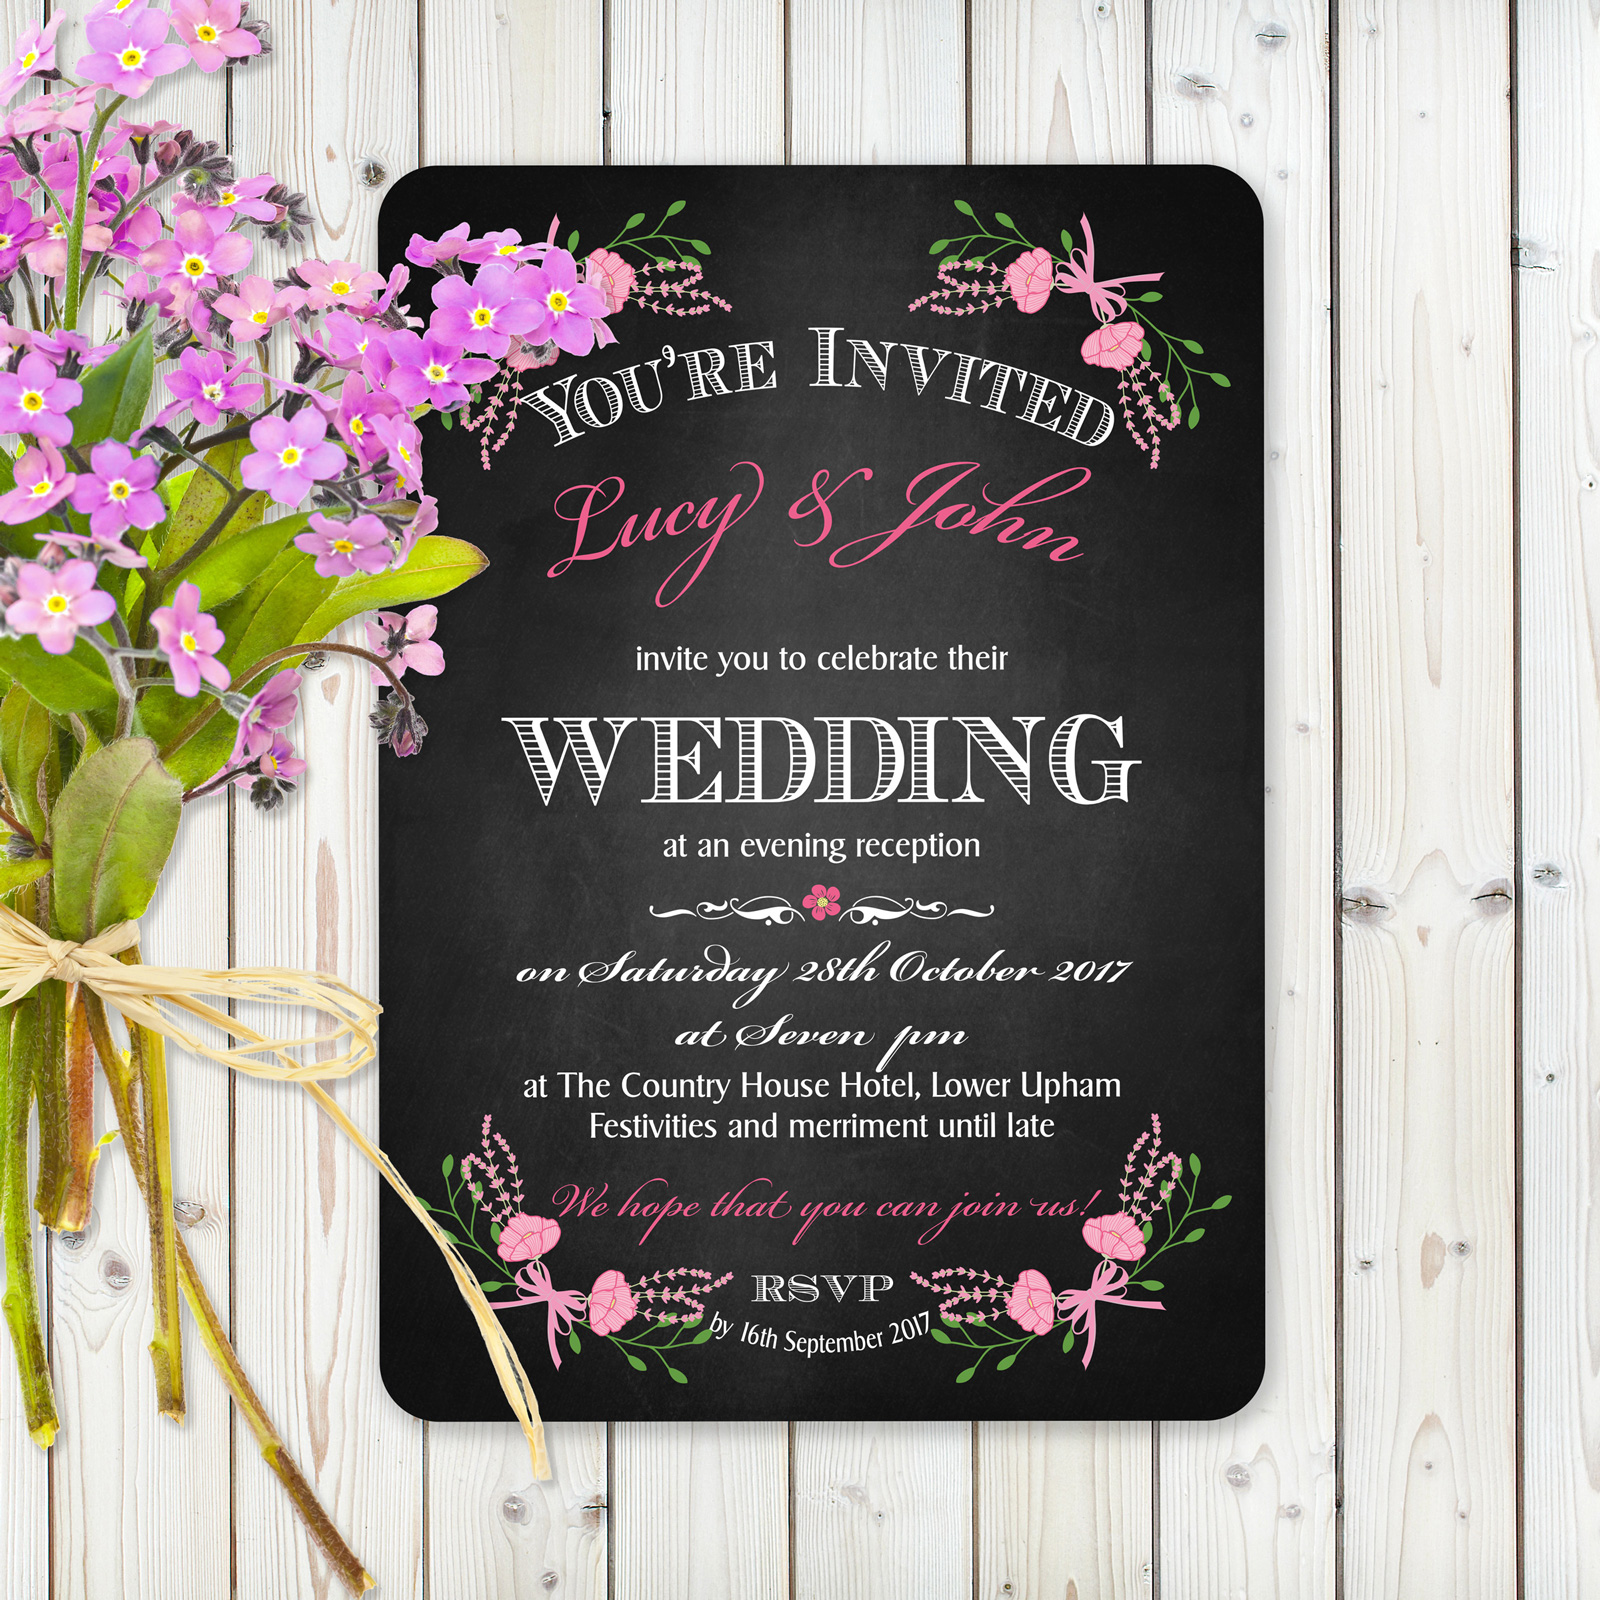 Floral Fantasy Pink on Chalkboard - Evening Invitation